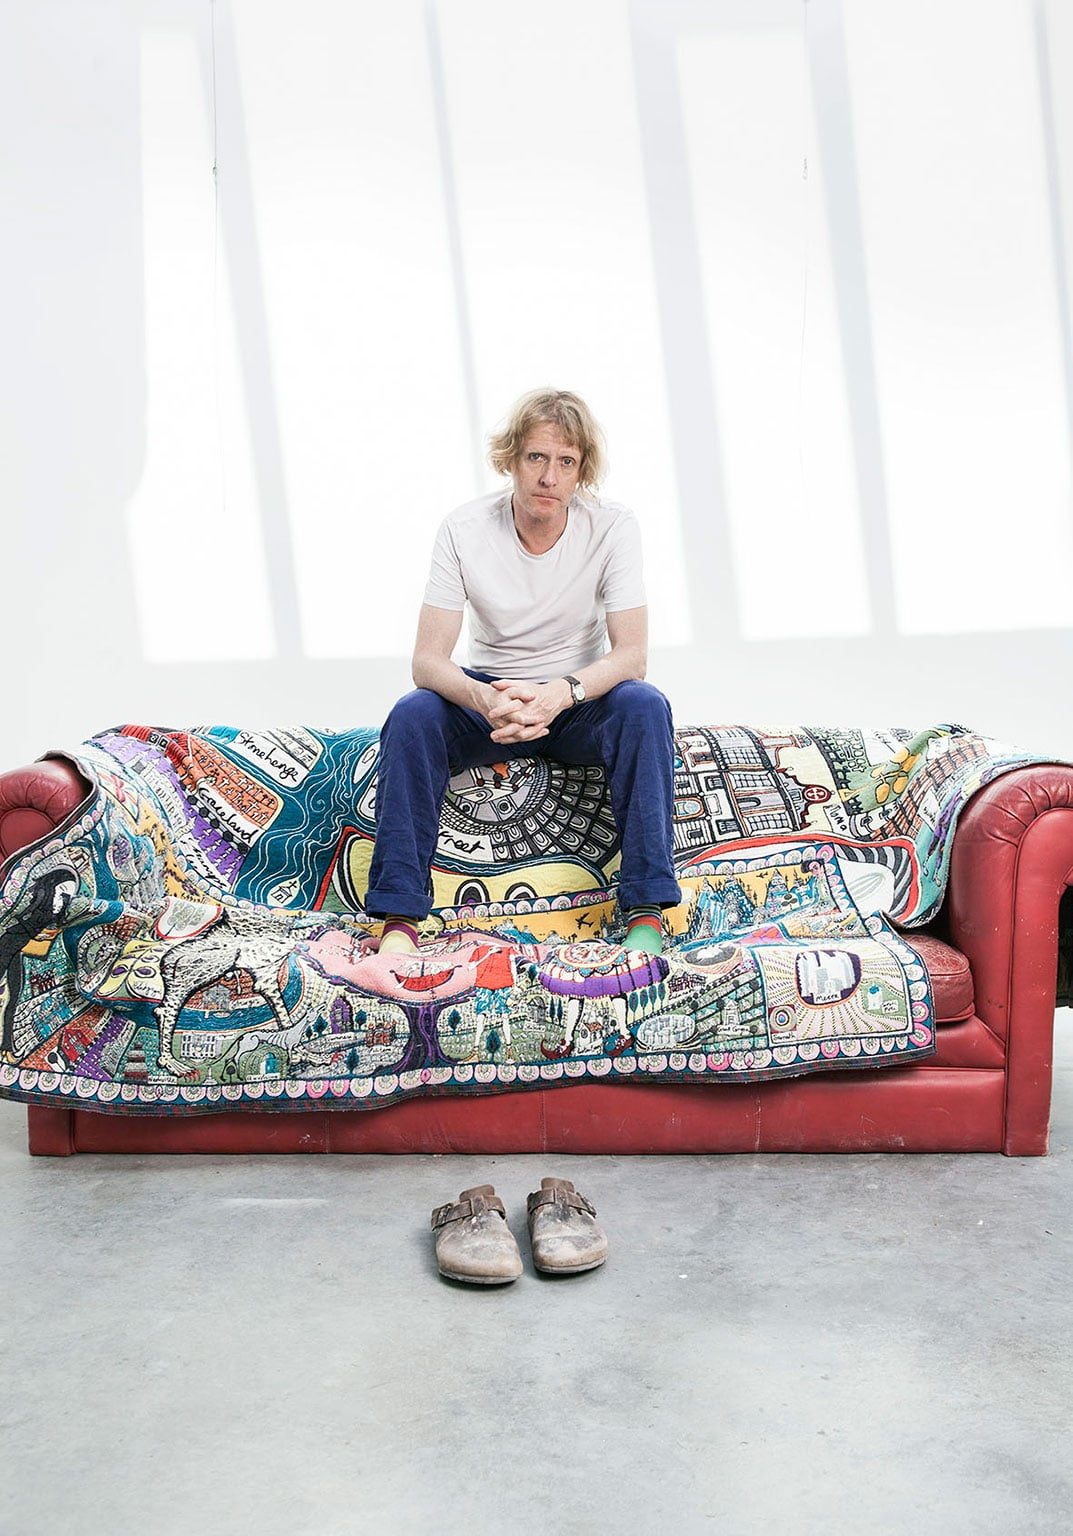 Grayson Perry: Who Are You?, National Portrait Gallery. Free to all - Grayson Perry. Photo: Penguin Books © Jochen Braun